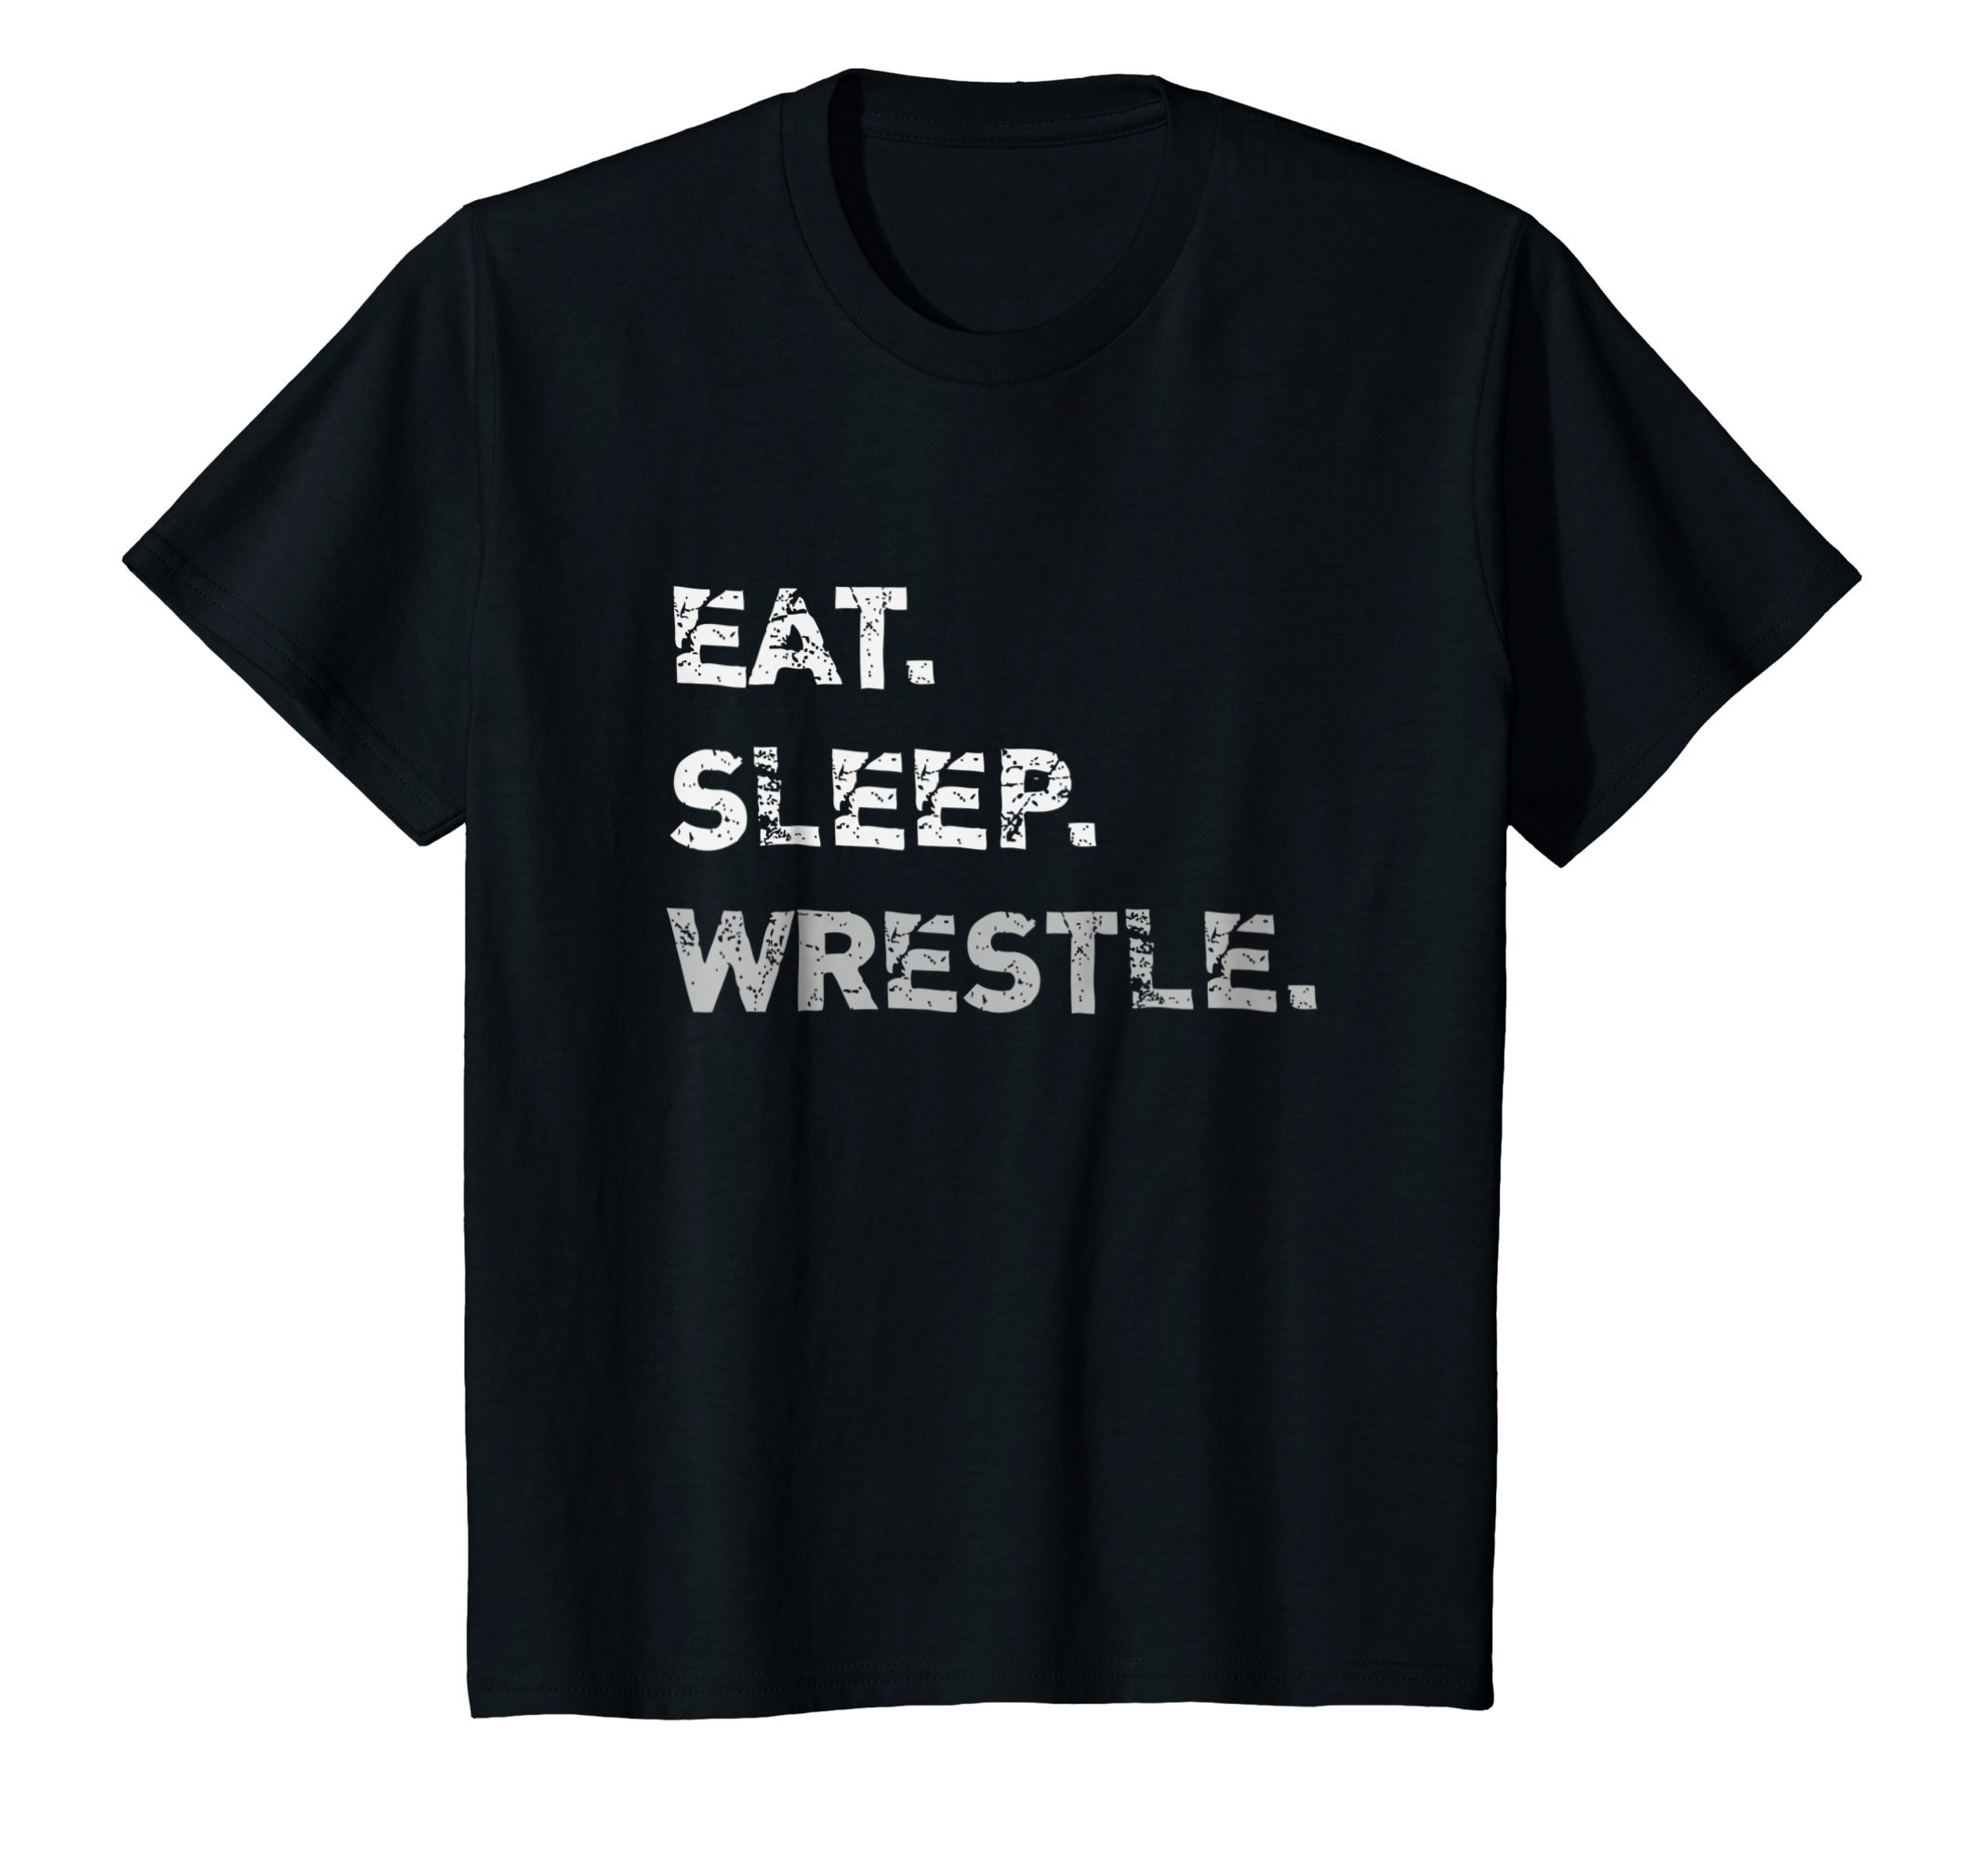 Kids Eat Sleep Wrestle Wrestling T-Shirt 10 Black by Wrestling Life Shirts